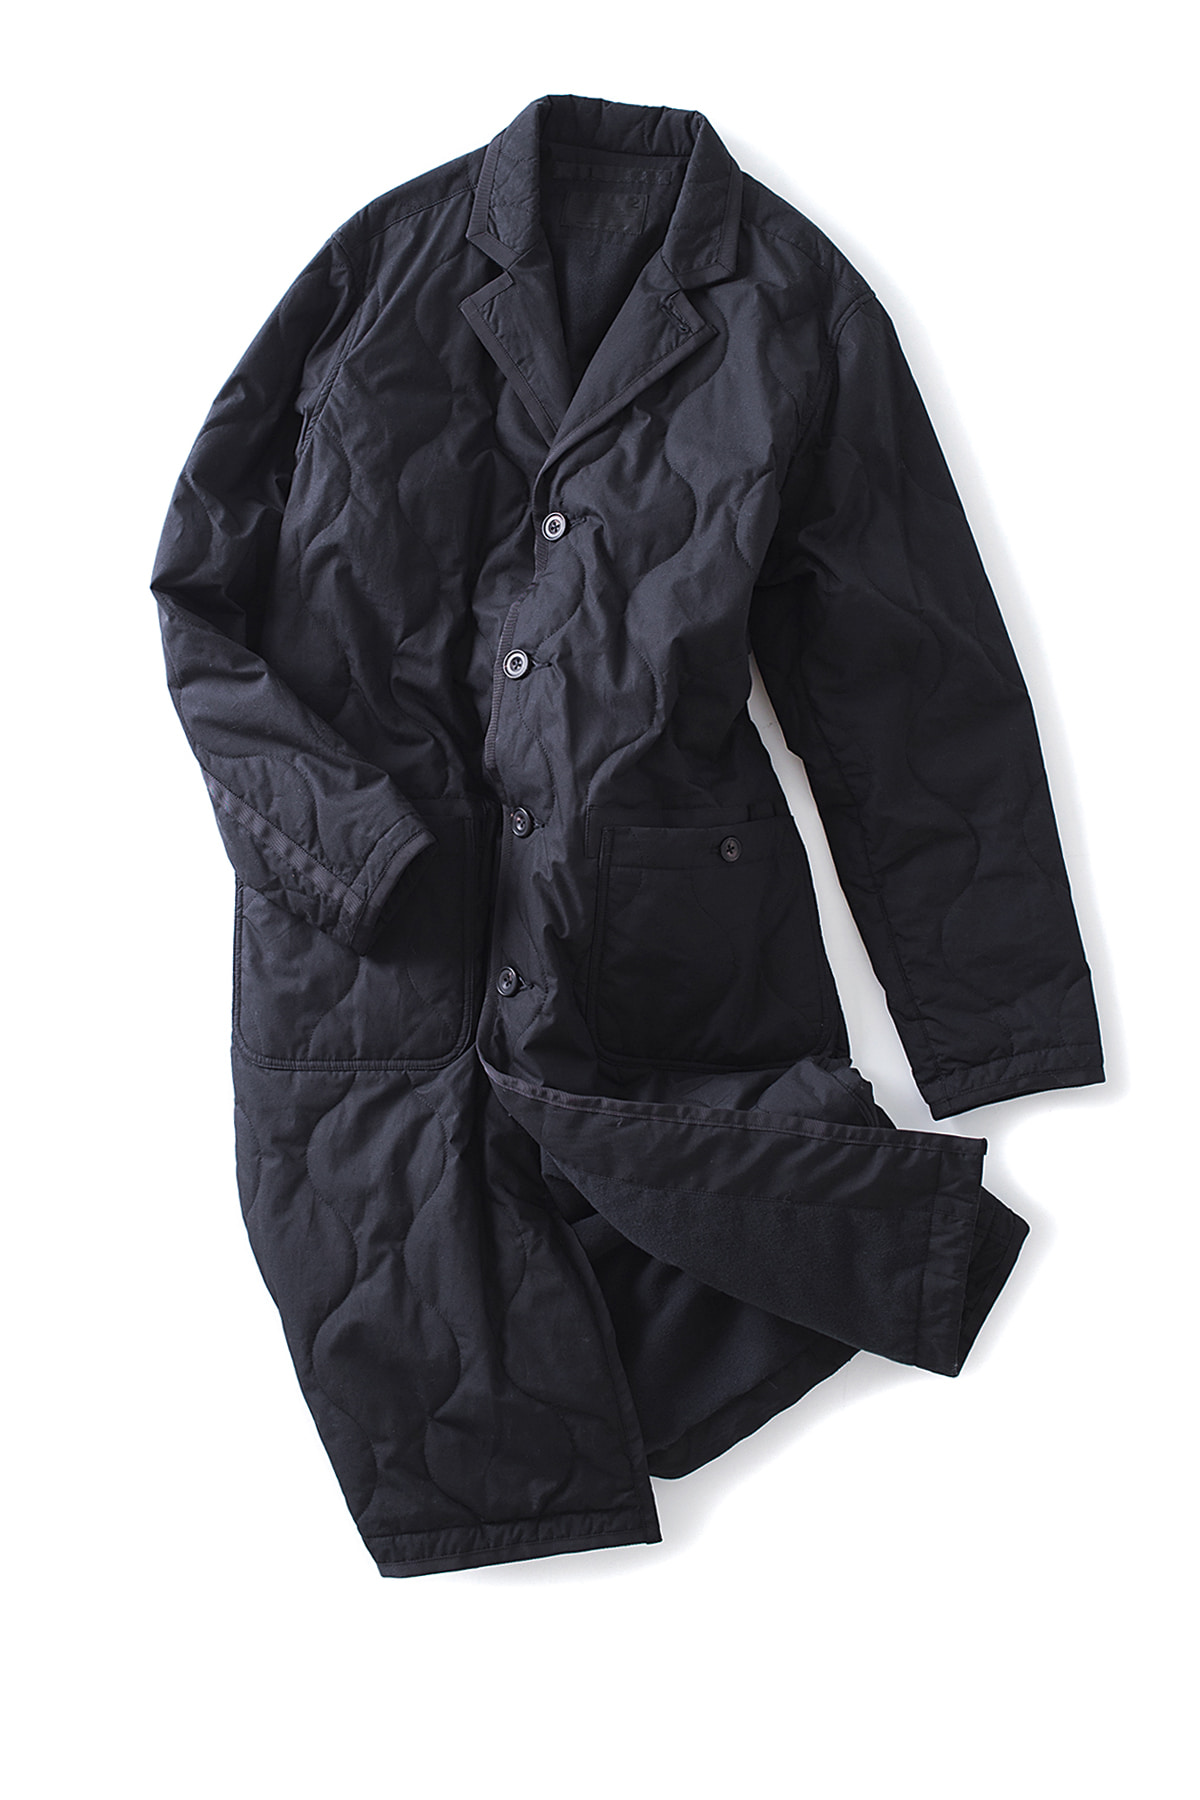 WHITE MOUNTAINEERING : Primaloft Quilted Long Coat (Black)